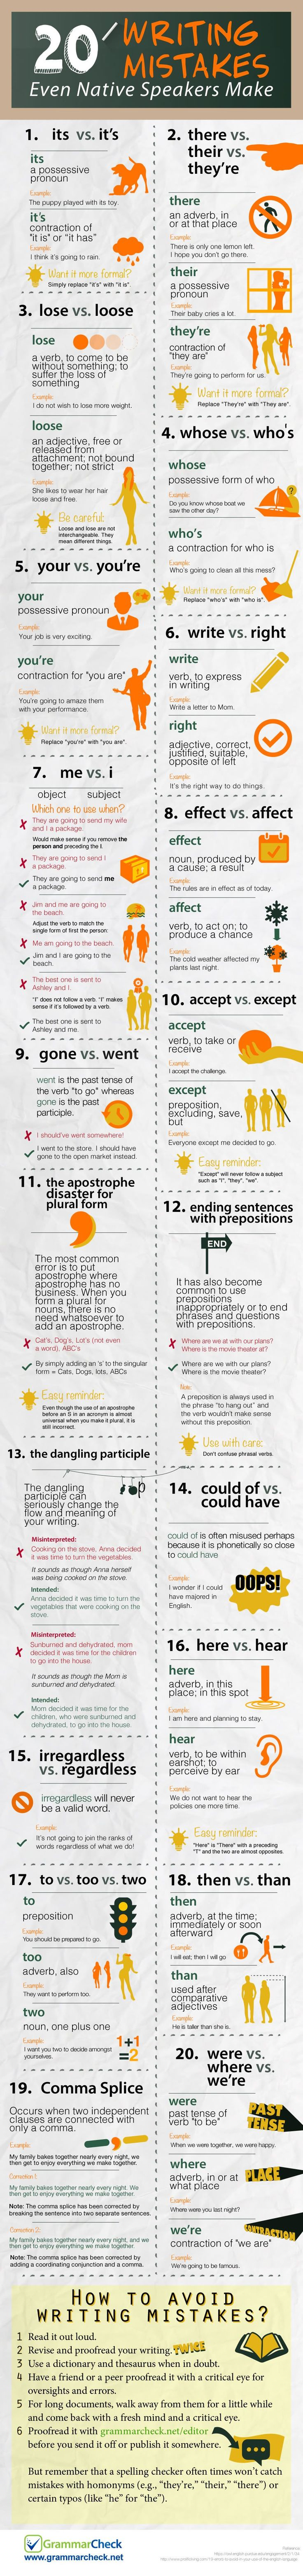 20 Writing Mistakes Even Native Speakers Make || Ideas and inspiration for teaching GCSE English || www.gcse-english.com ||